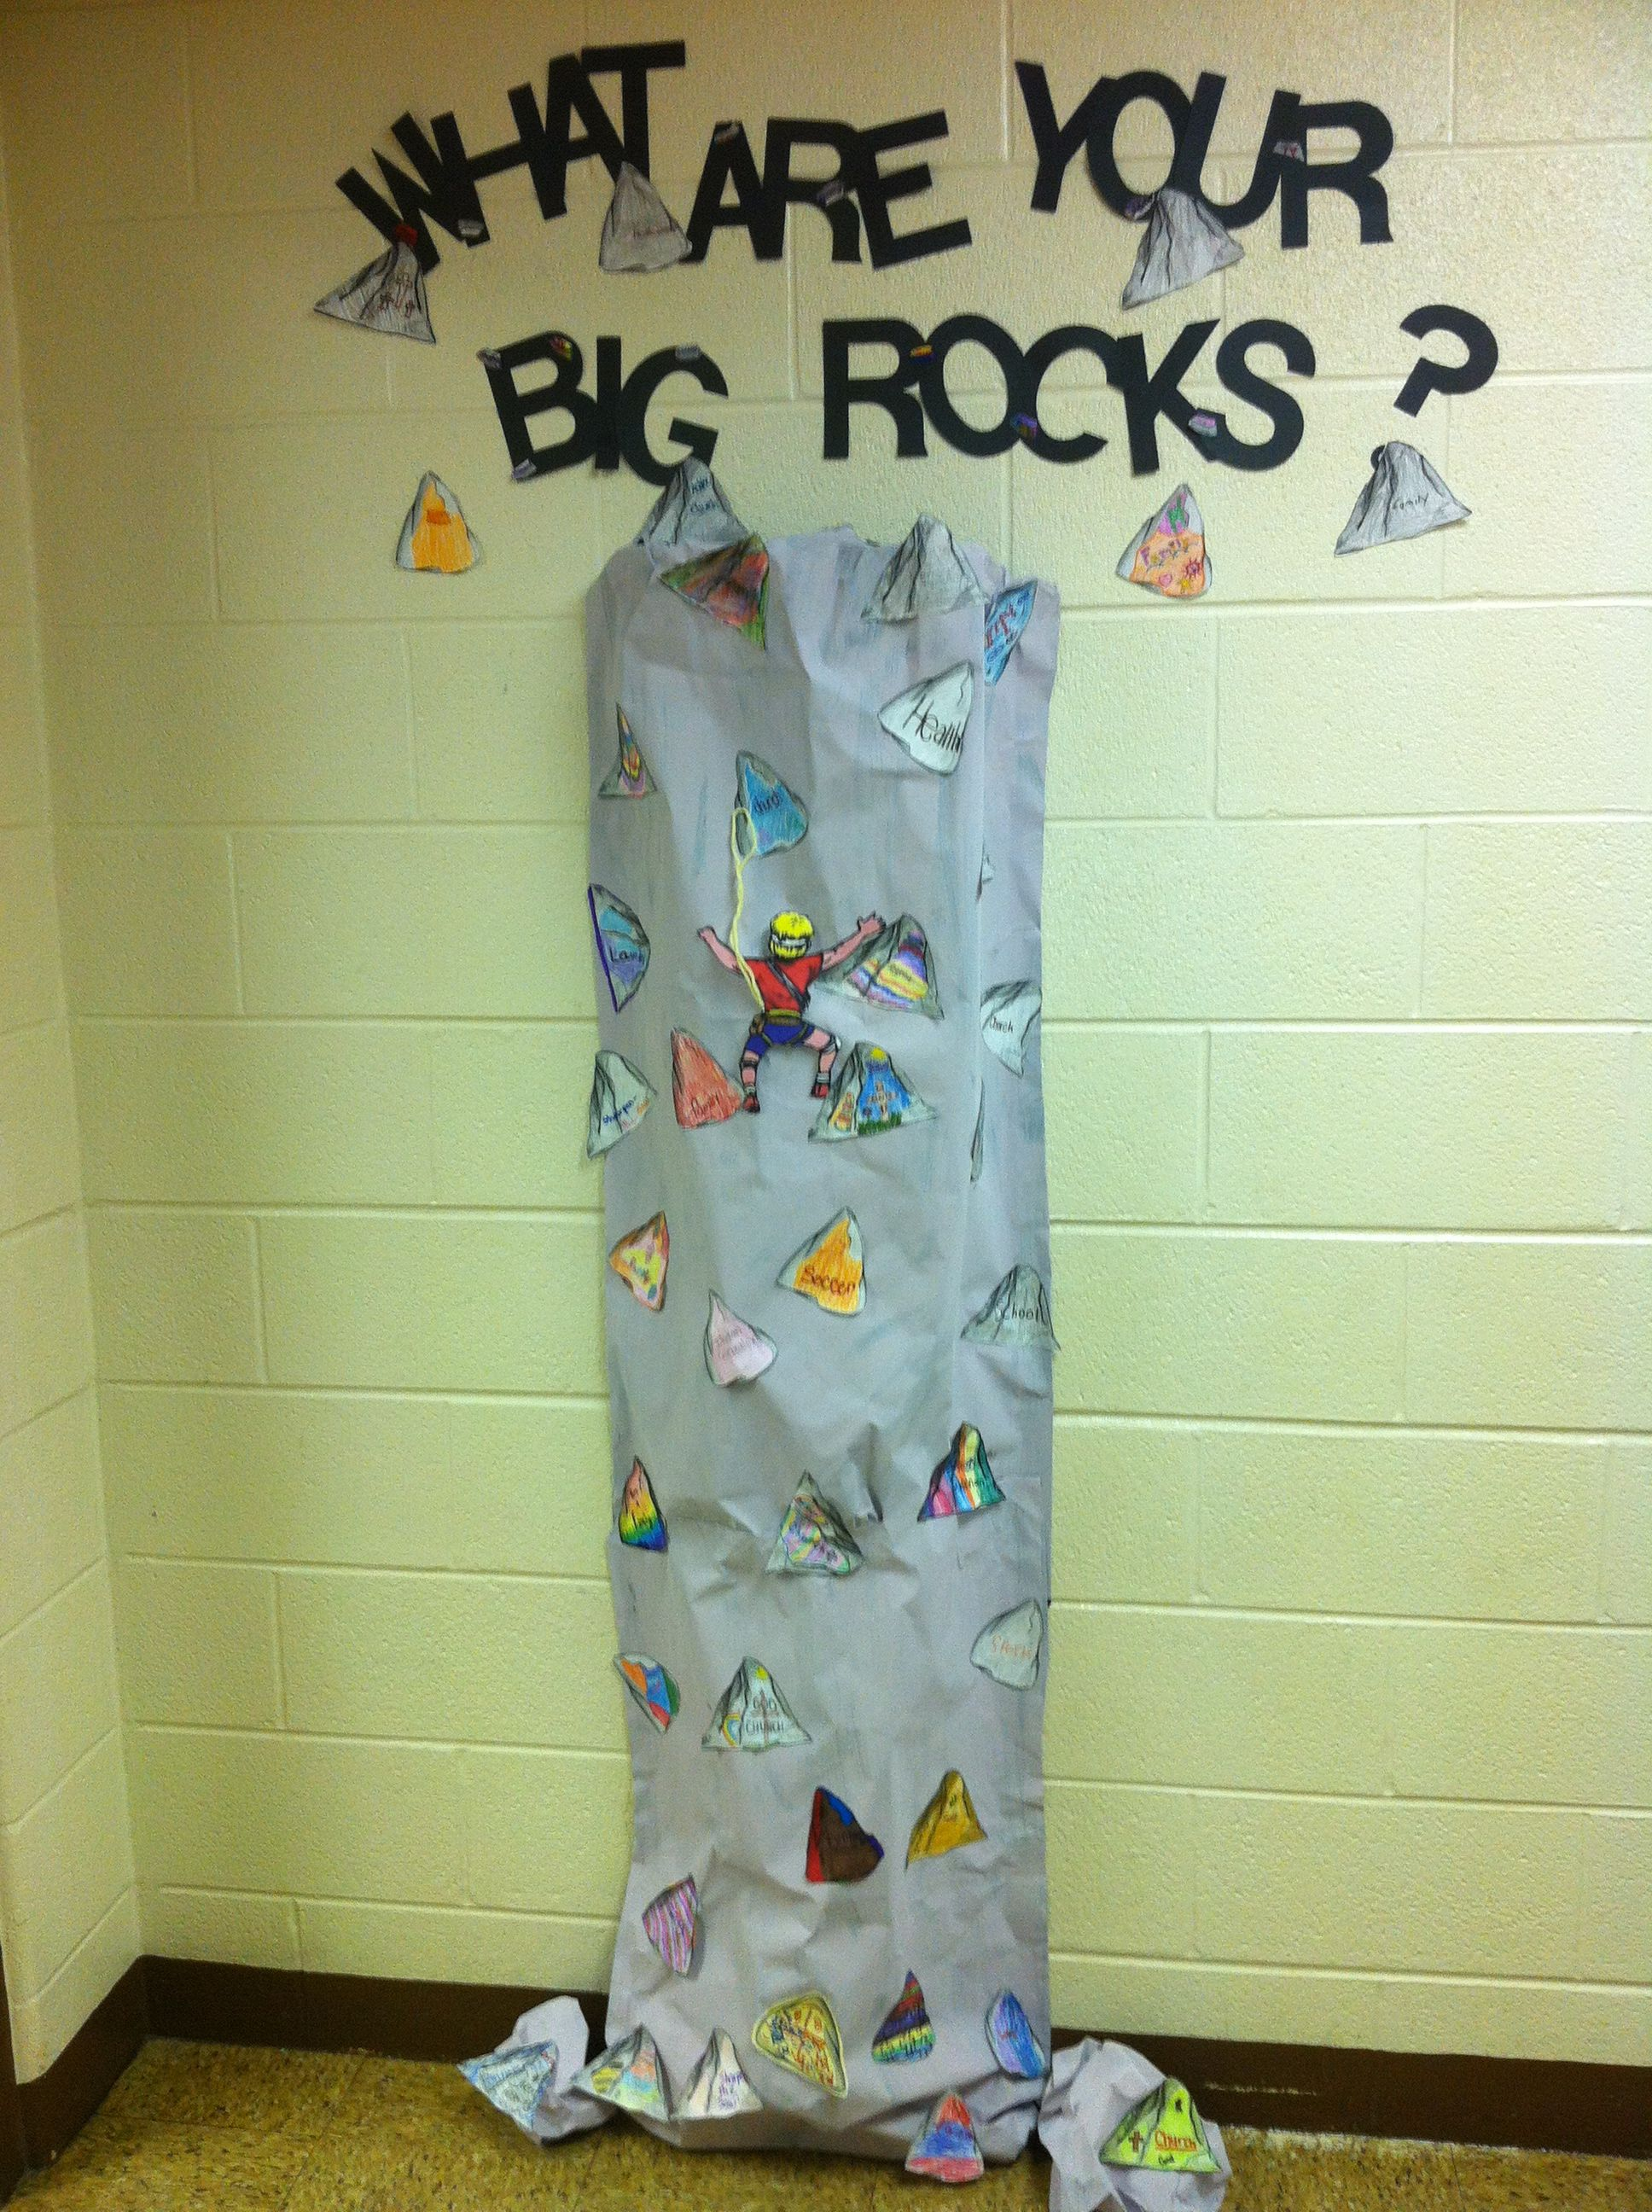 Putting First Things First Student S Big Rocks